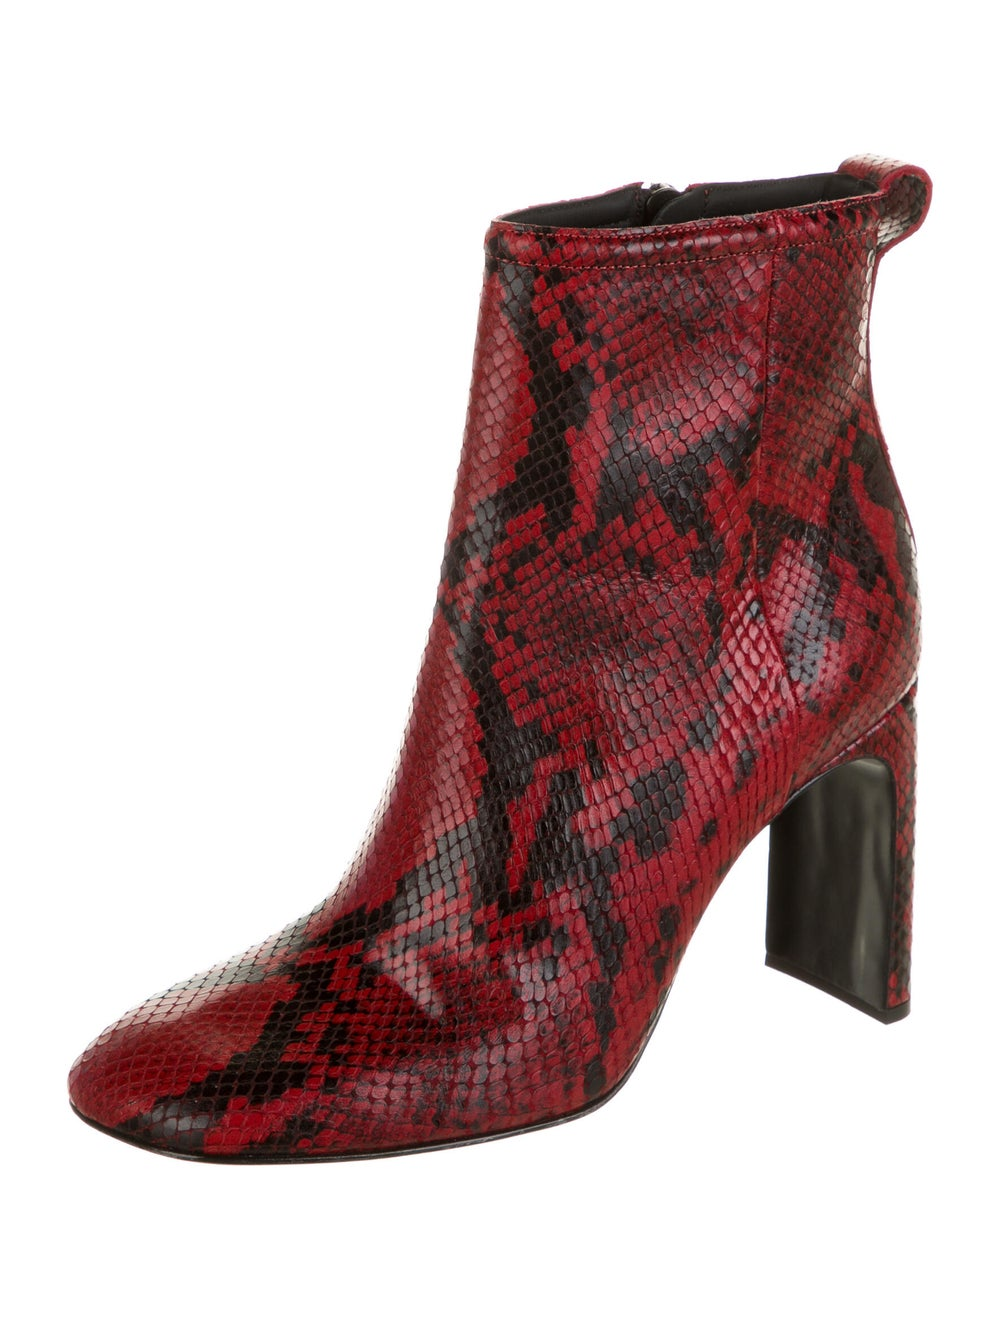 Rag & Bone Embossed Leather Boots Red - image 2